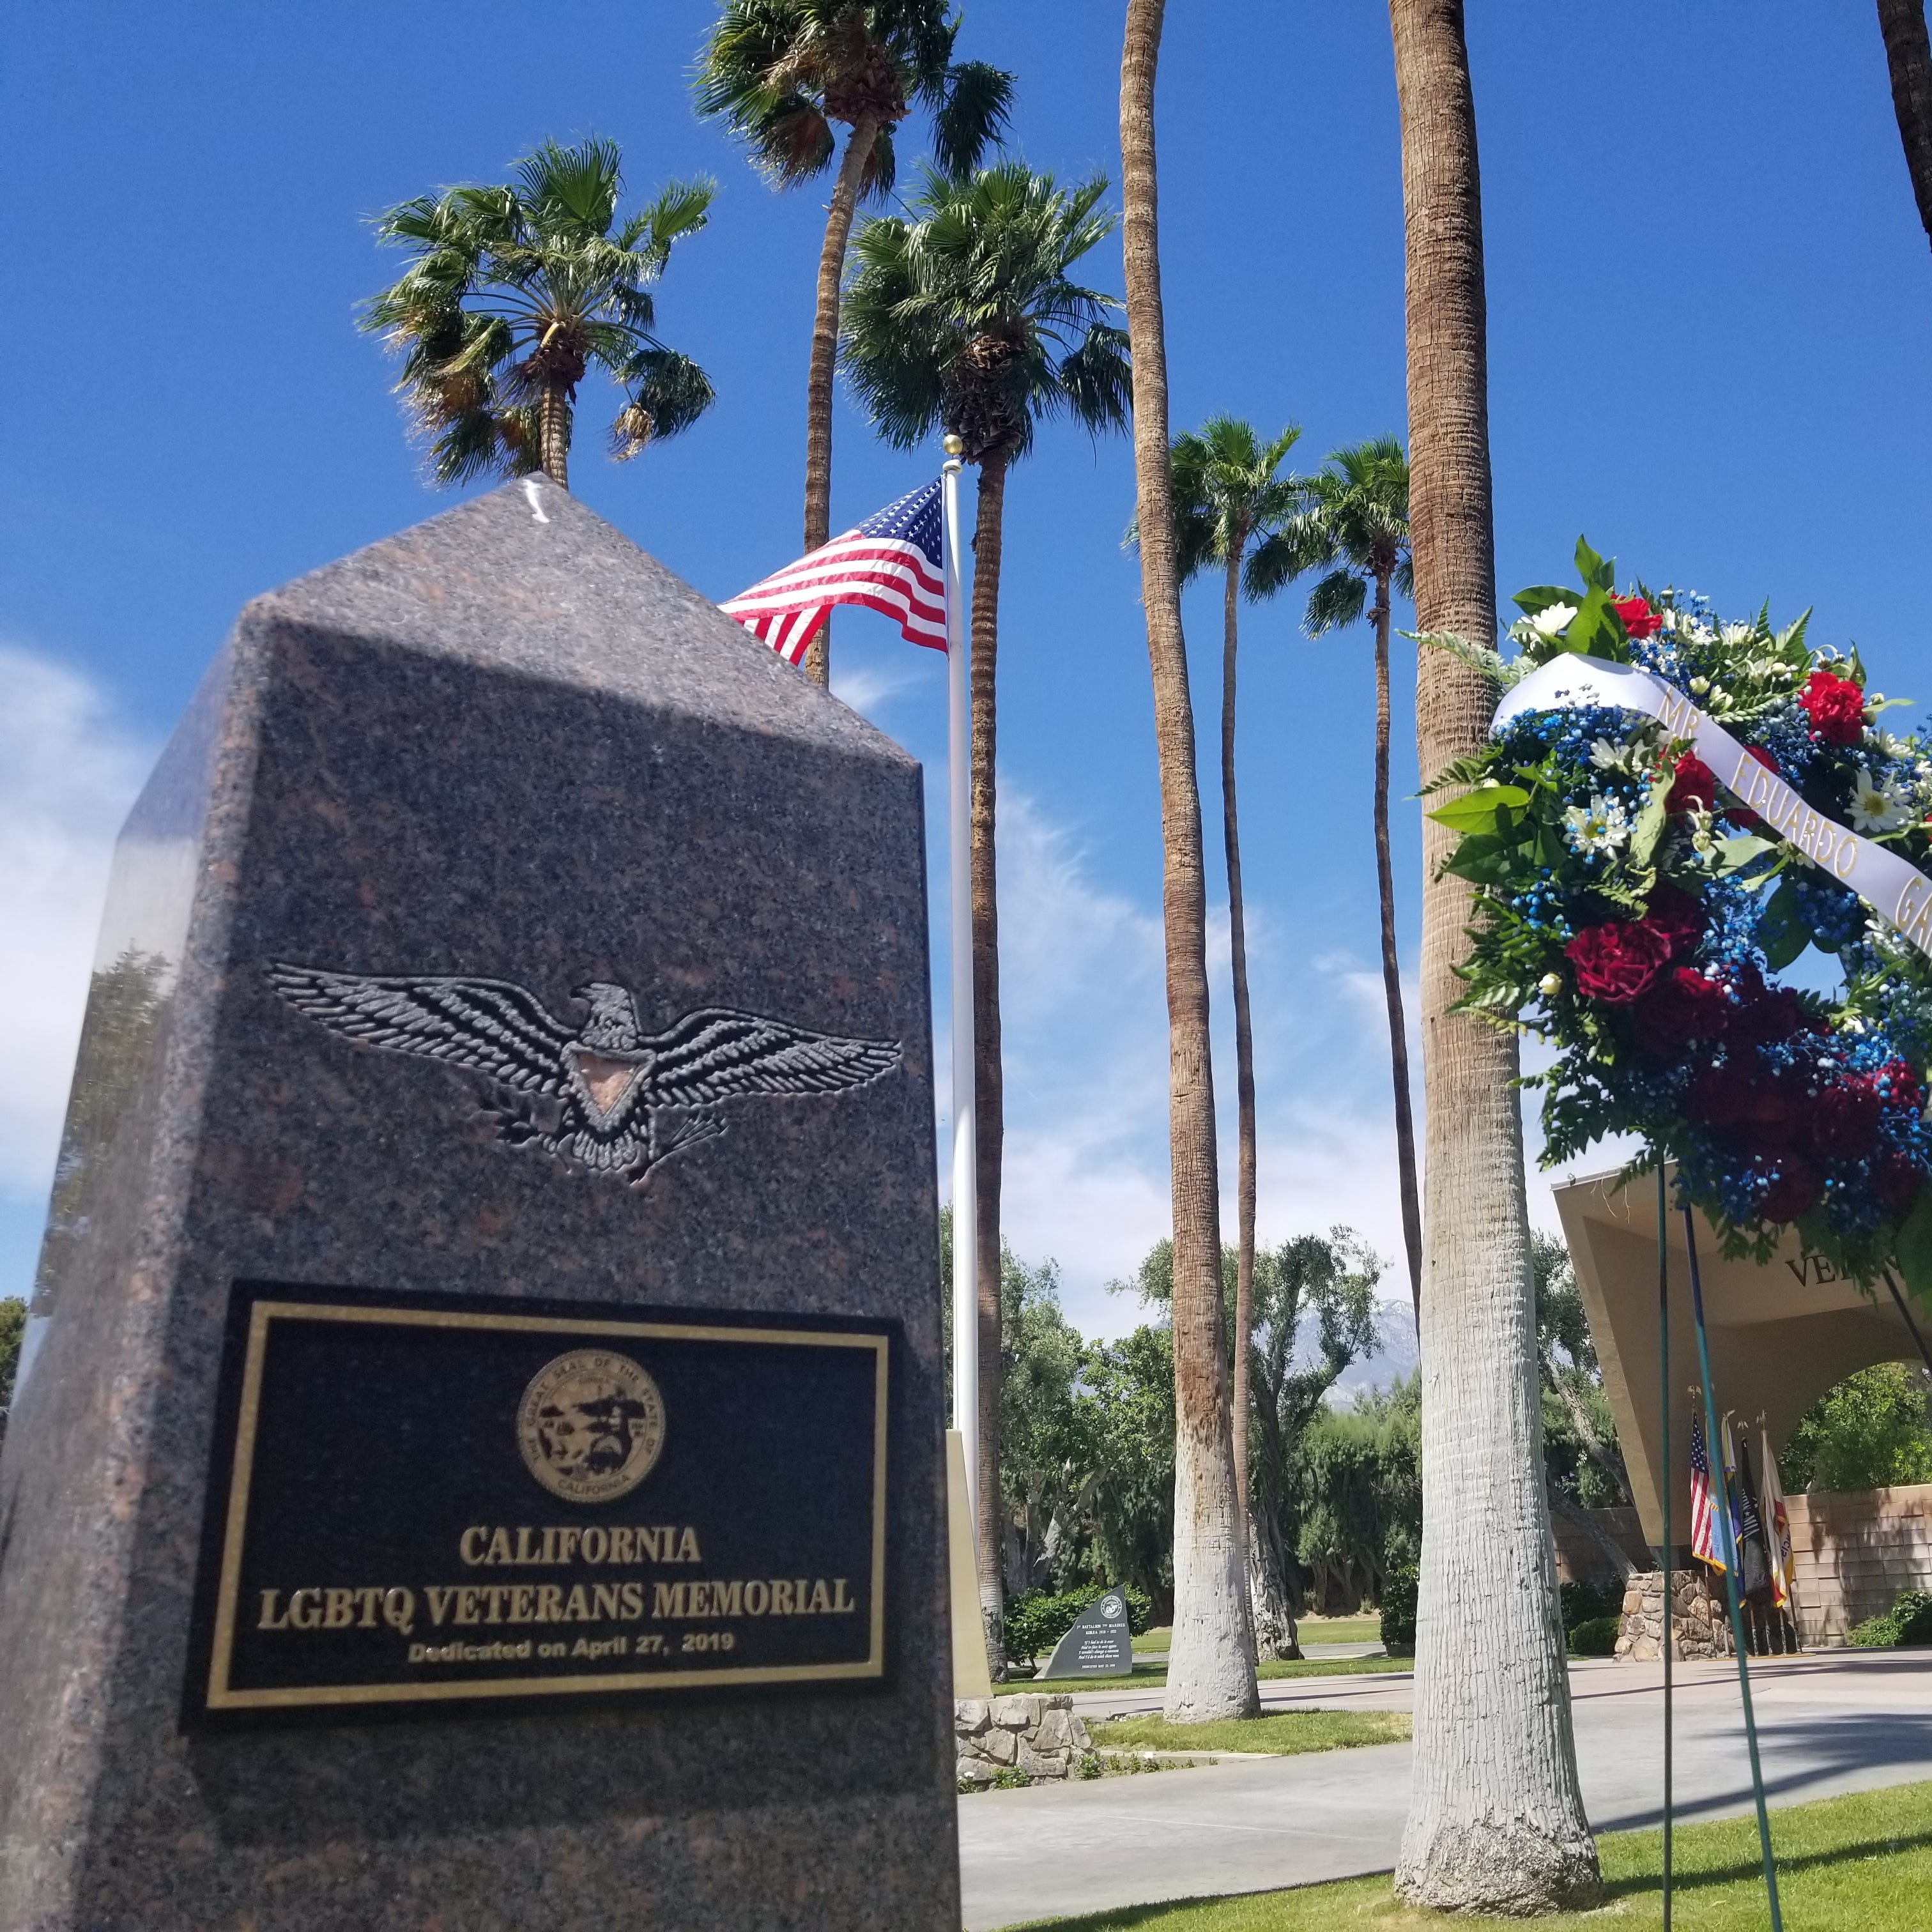 Cathedral City is now home to the state's memorial honoring LGBTQ veterans